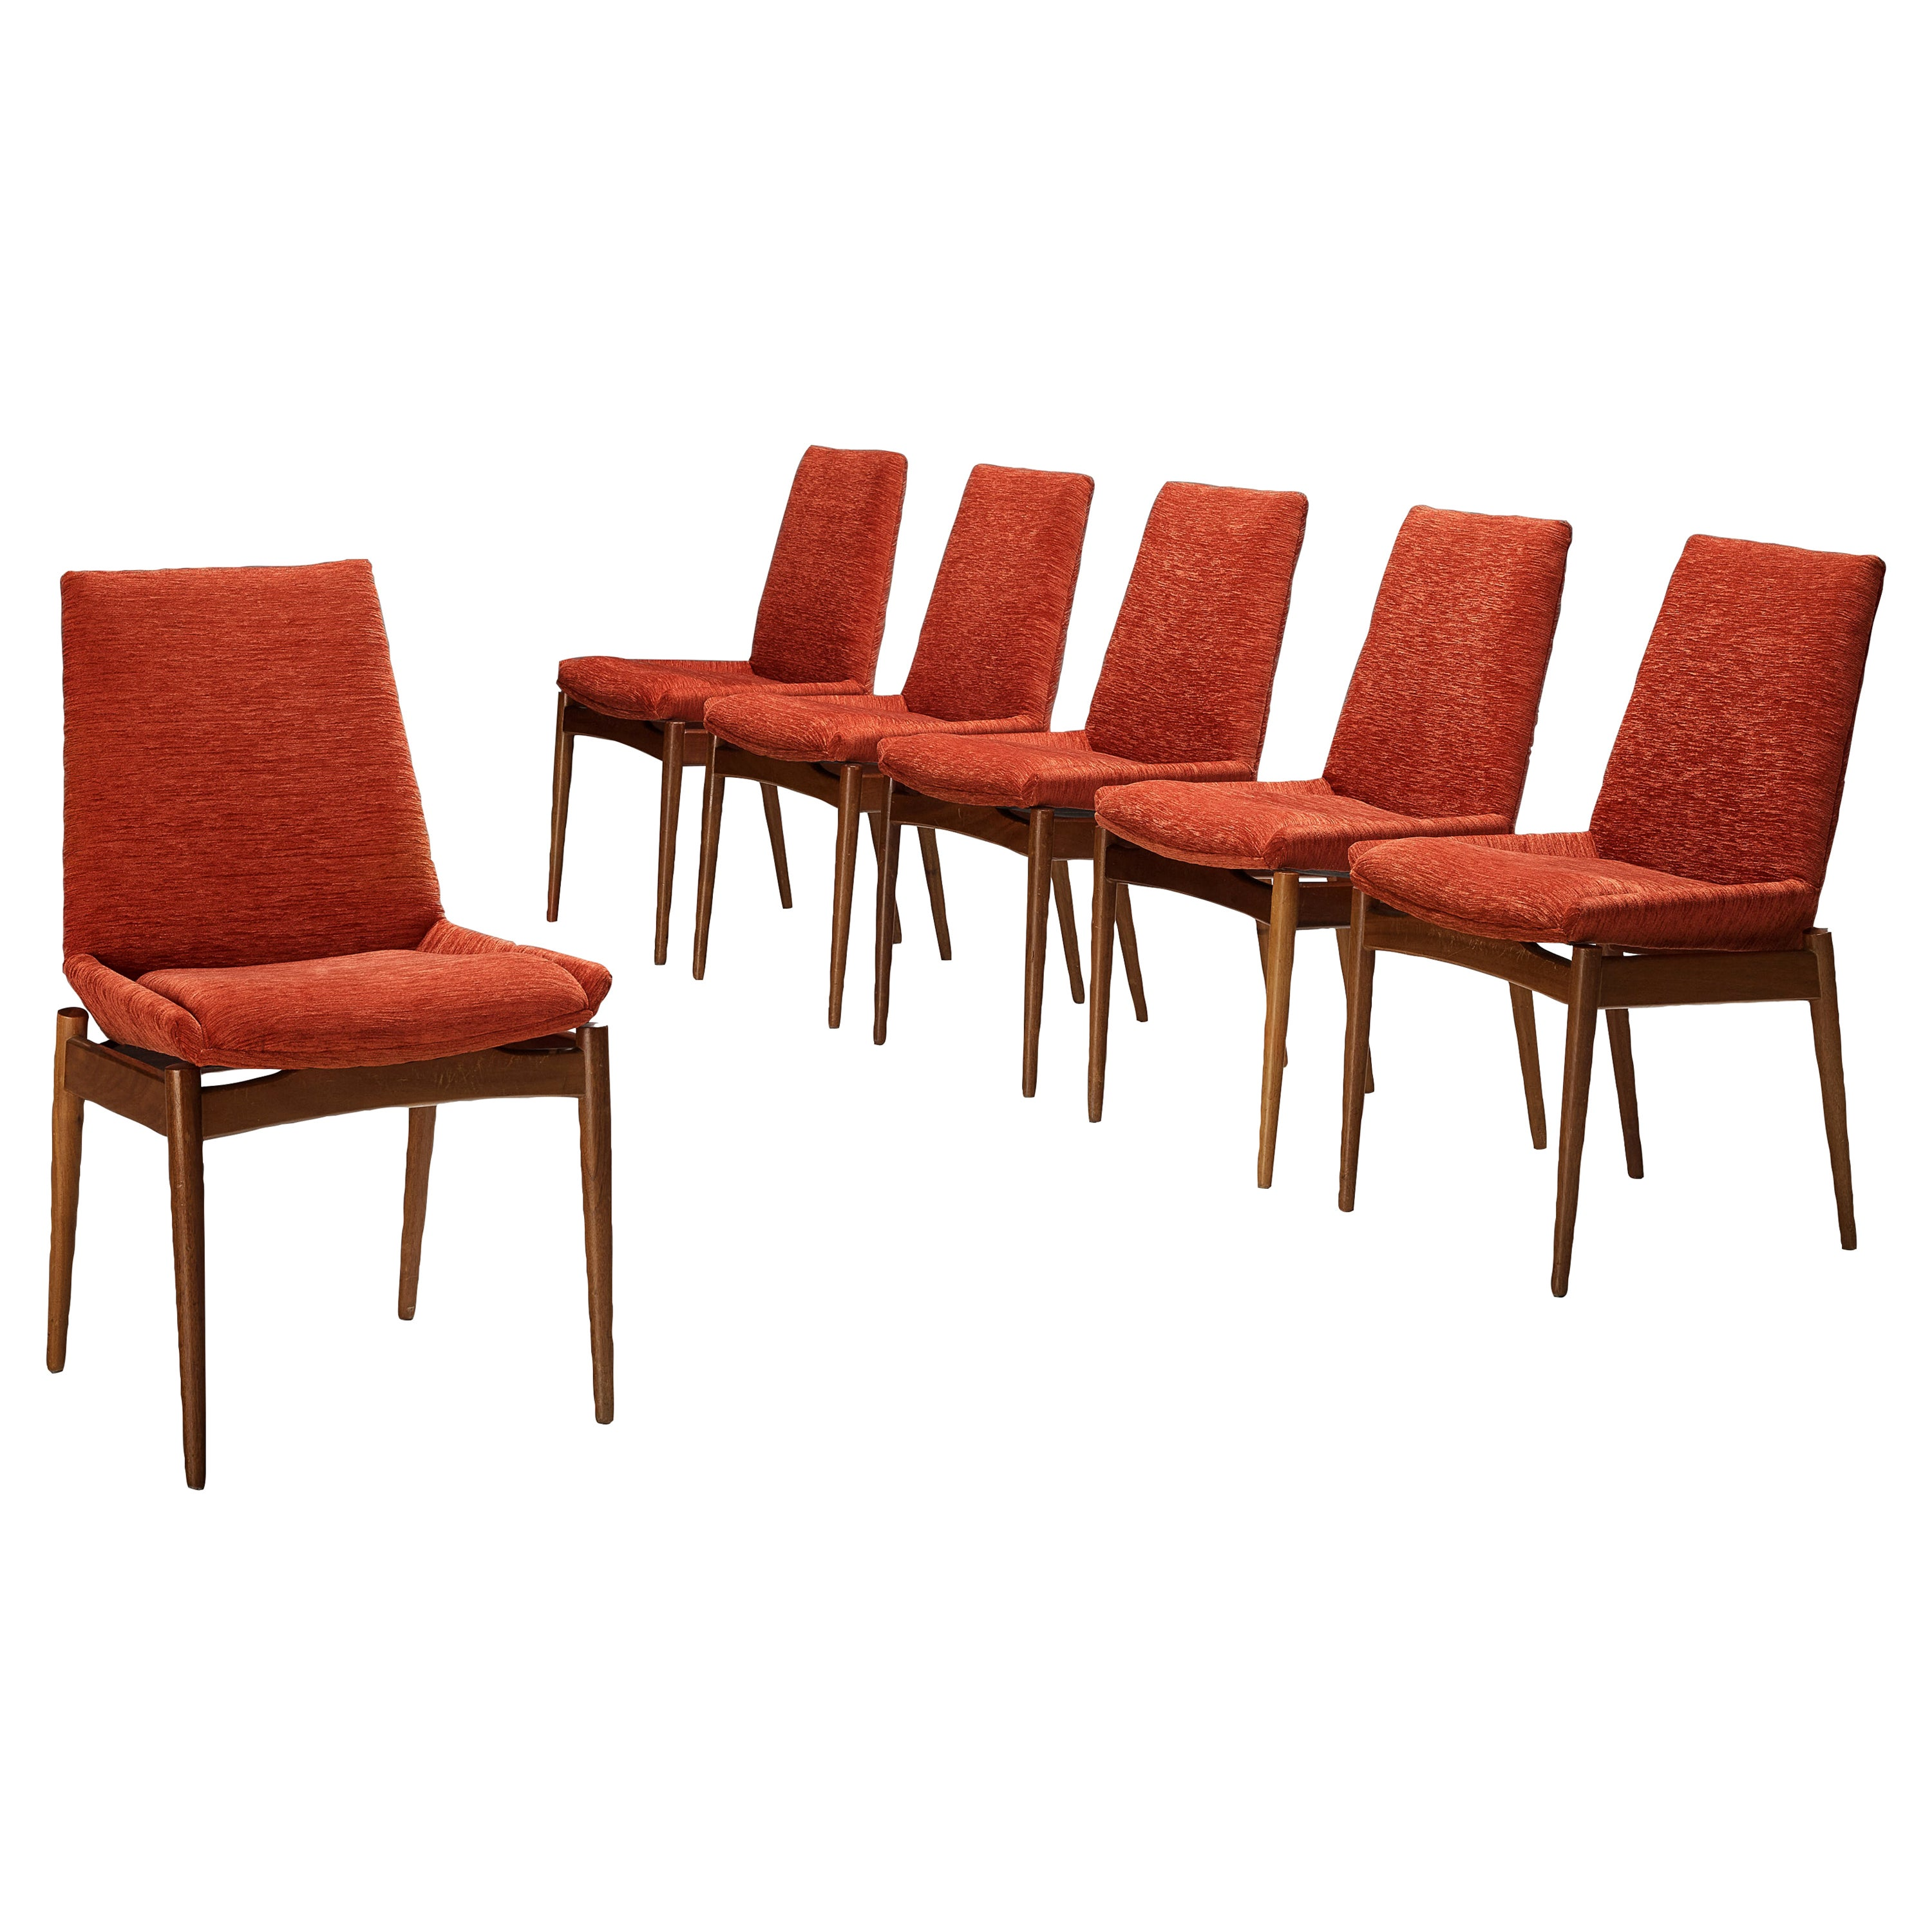 Scandinavian Dining Chairs in Teak and Red/Orange Cord Upholstery